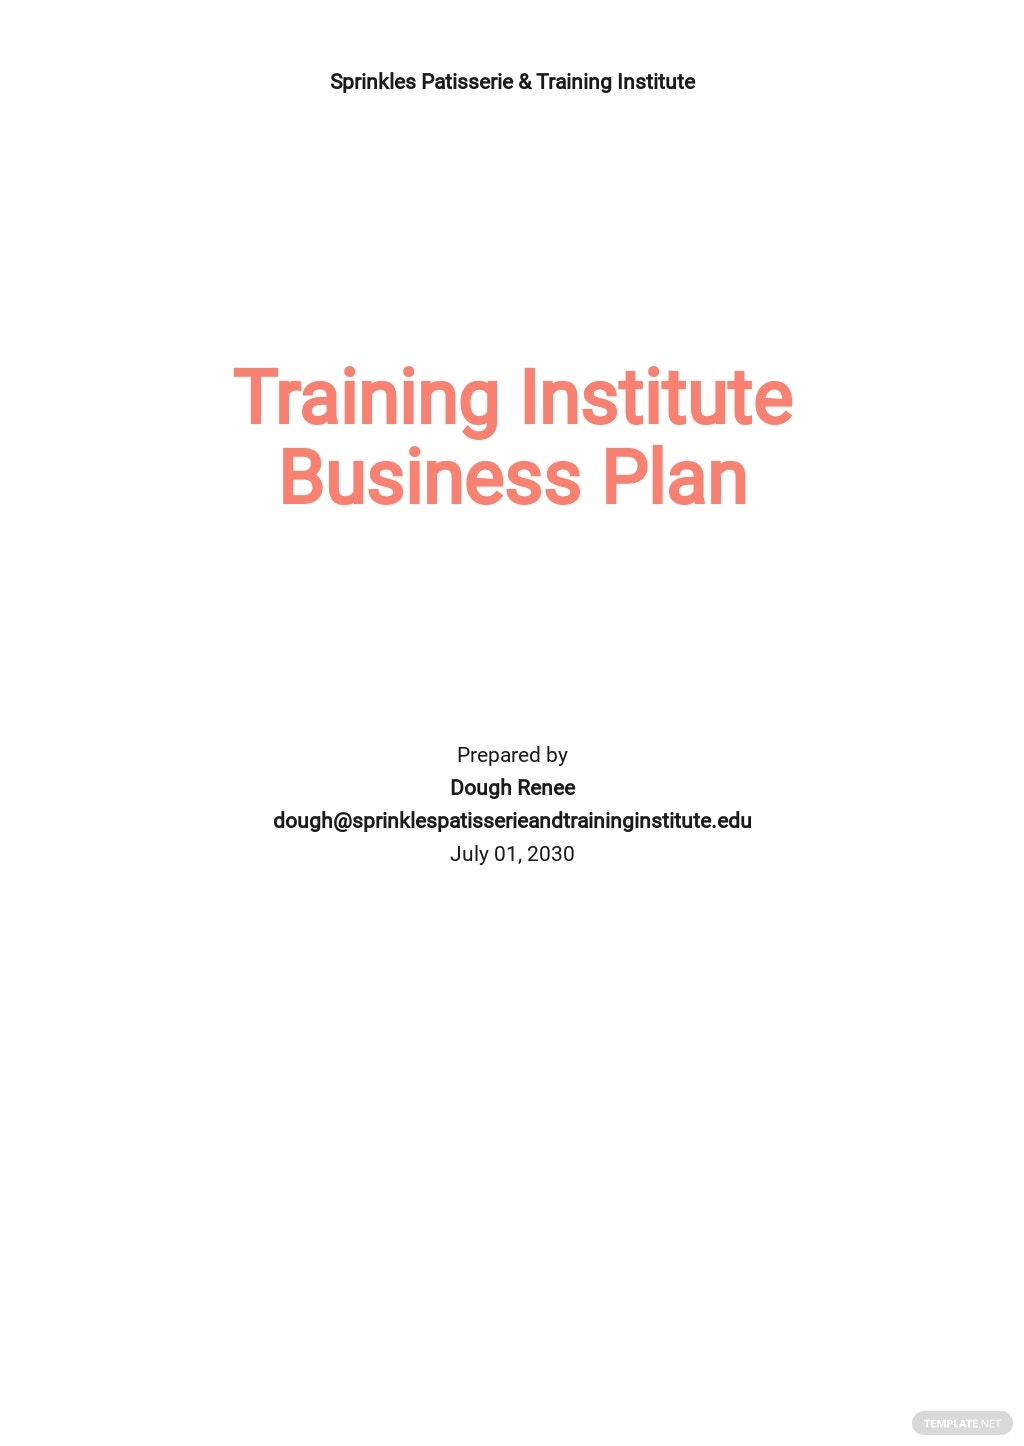 Training Institute or Provider Business Plan Template.jpe